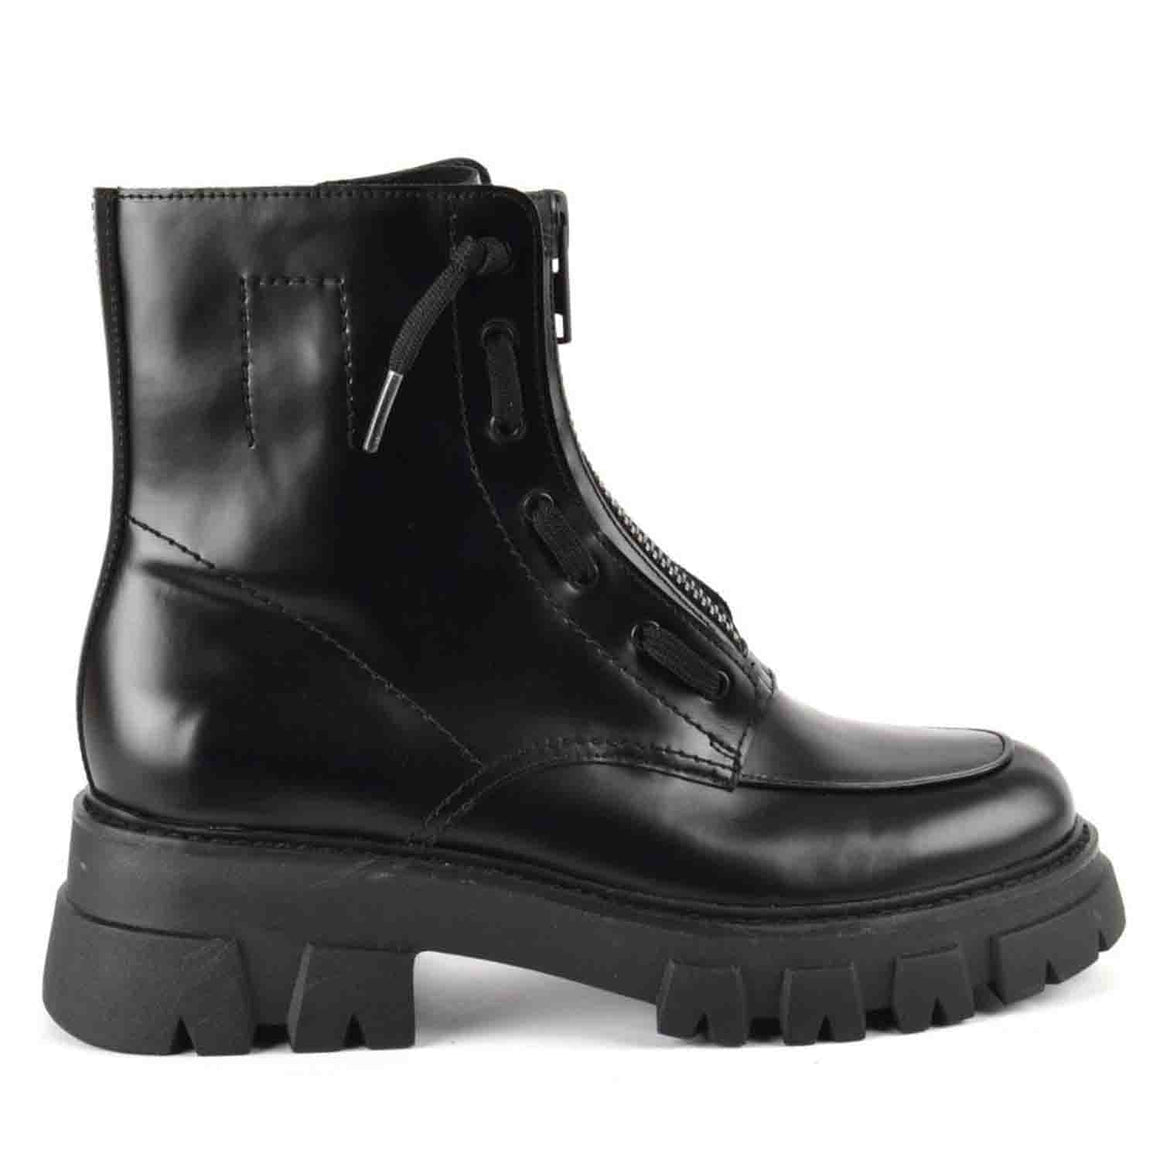 ASH LYNCH ZIP FRONT BOOTS